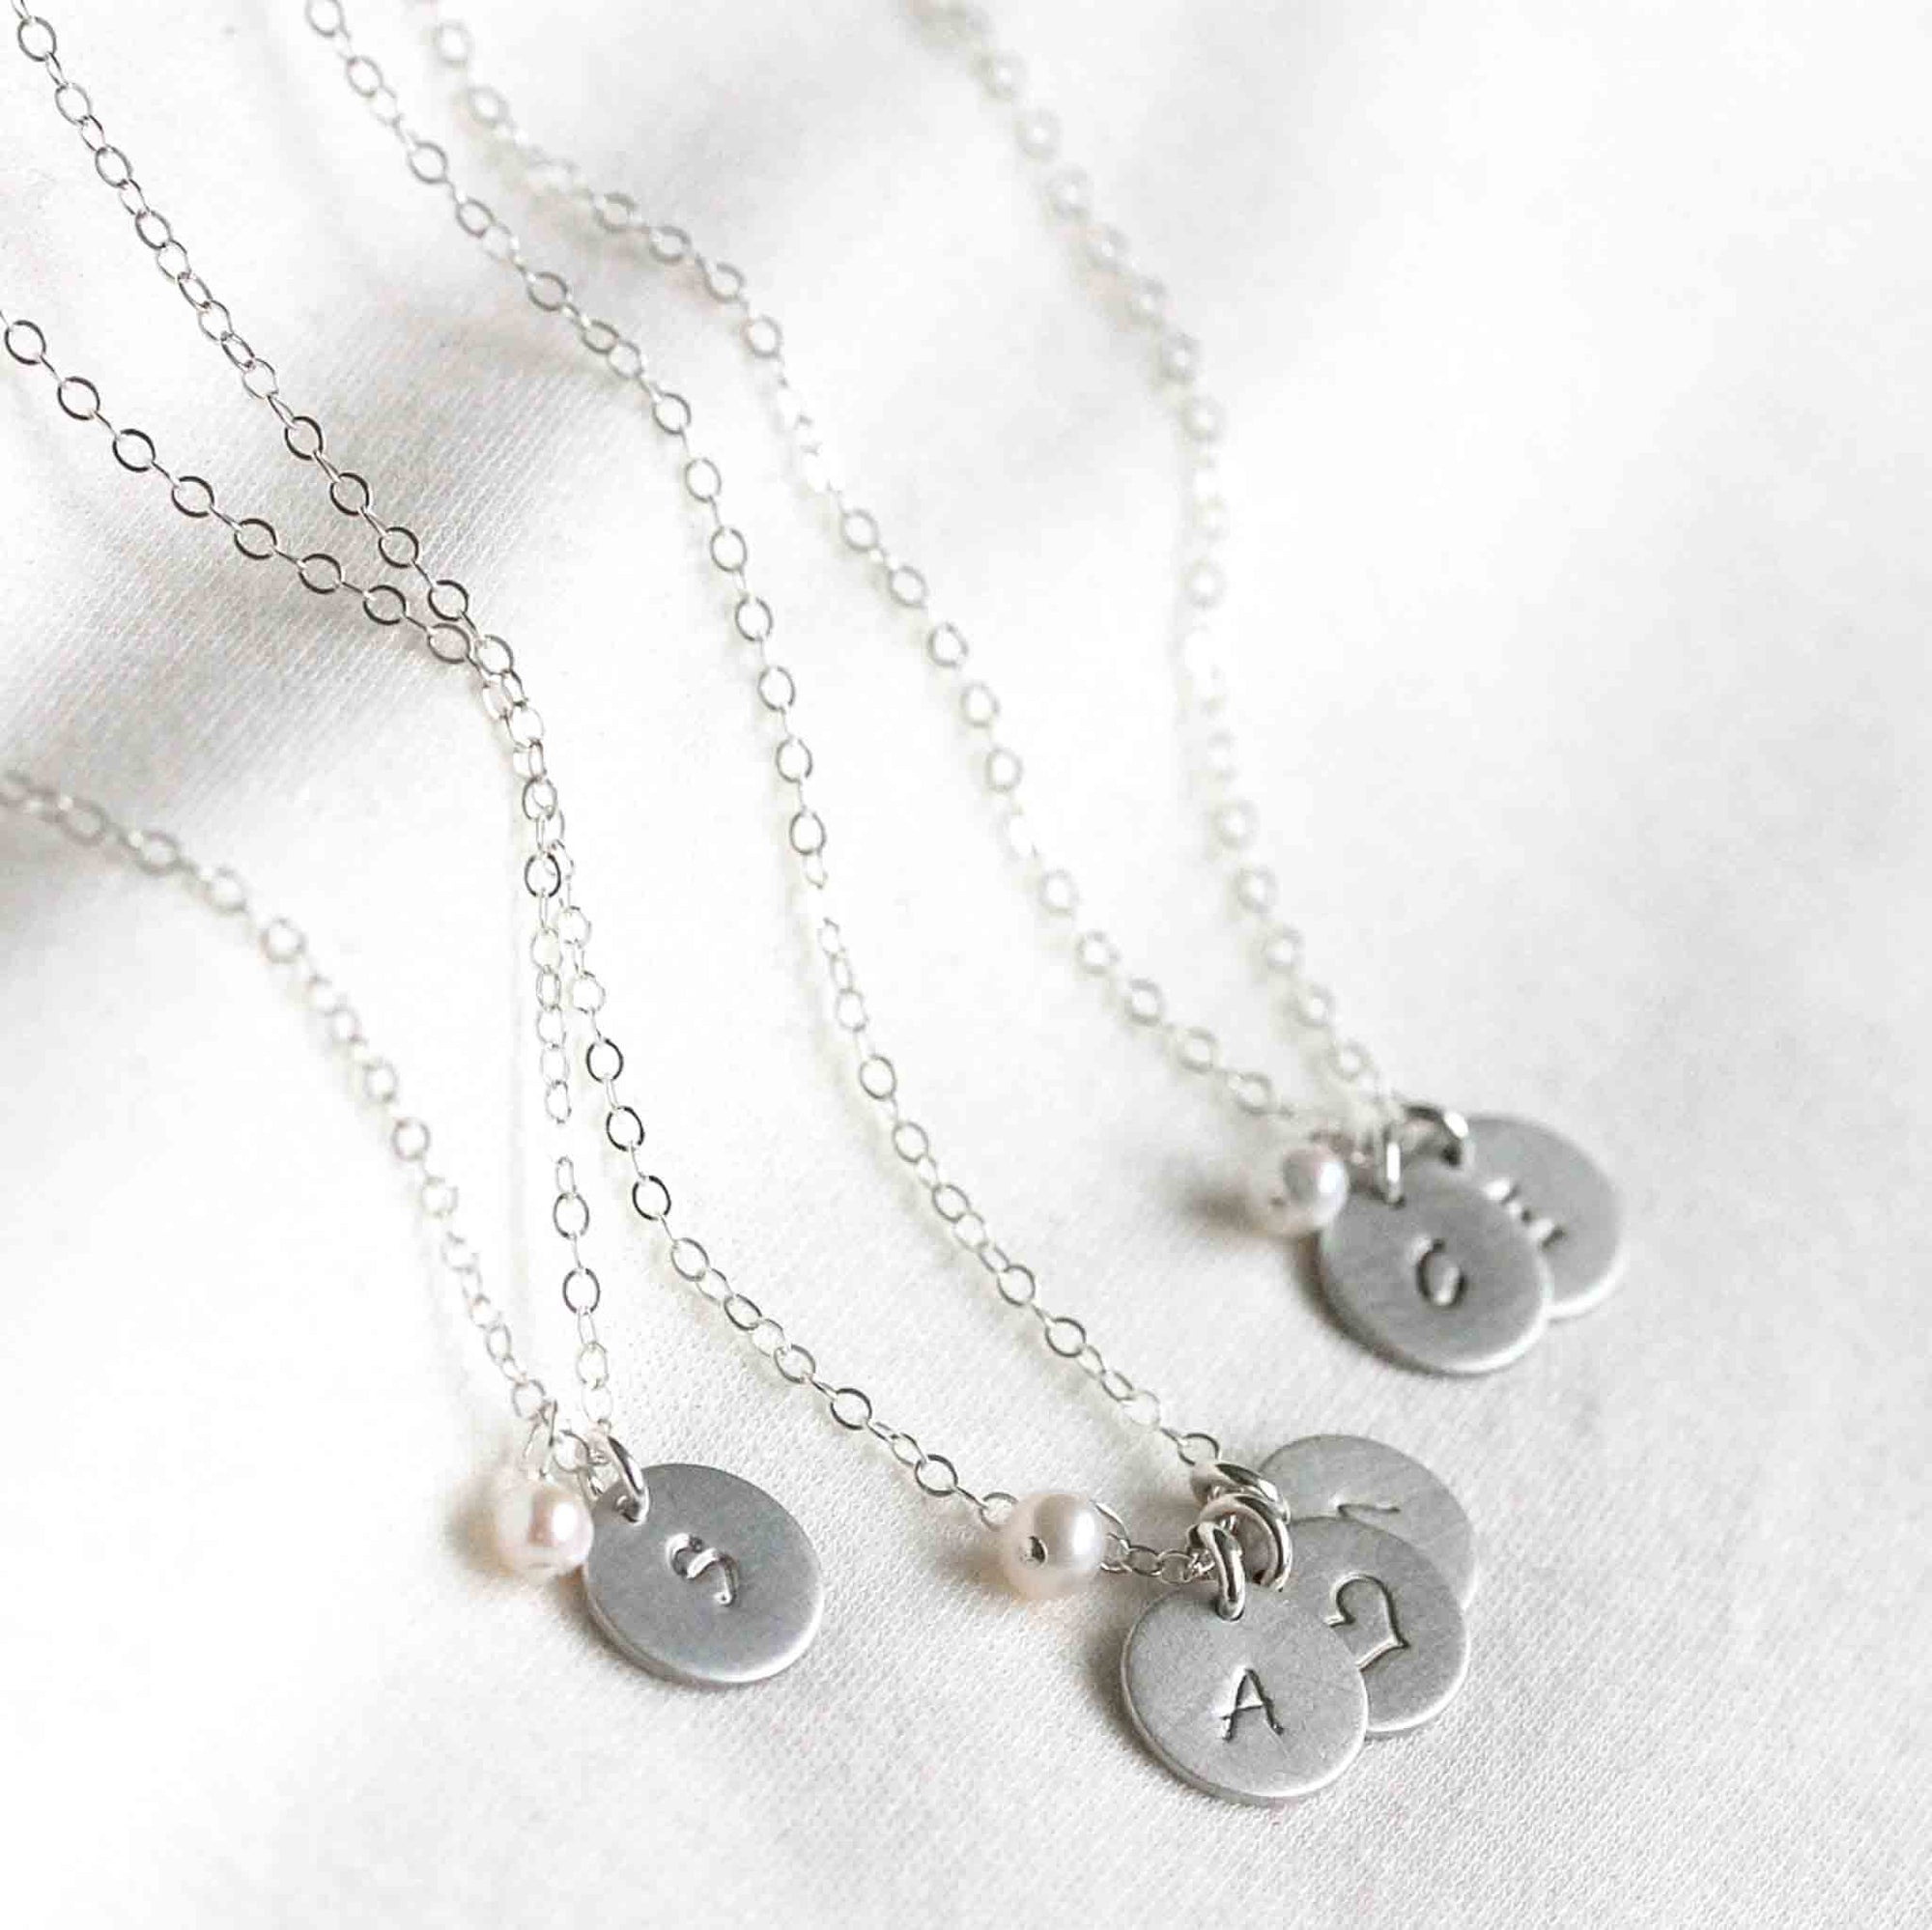 Initialkette 925 Sterling Silber mit Perle - Mayamberlin